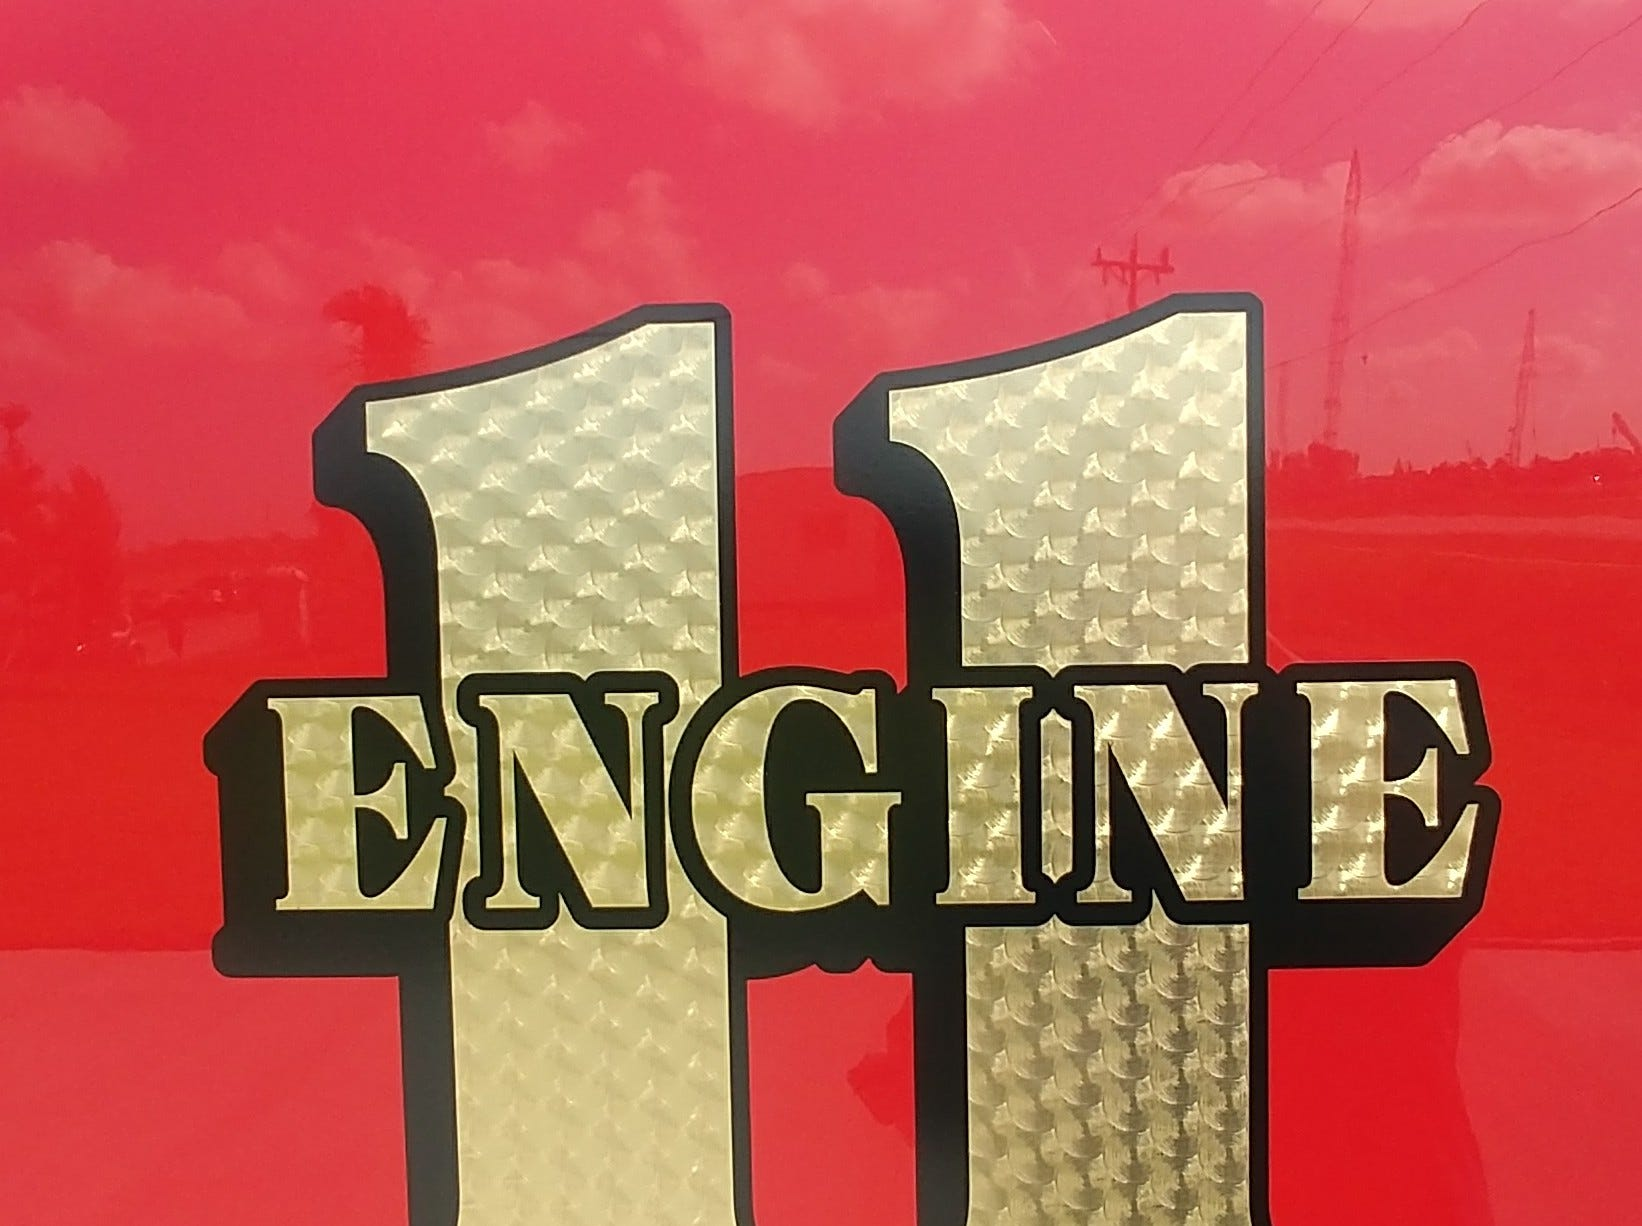 Engine 11 will make its home at Cape Coral's newest fire station.